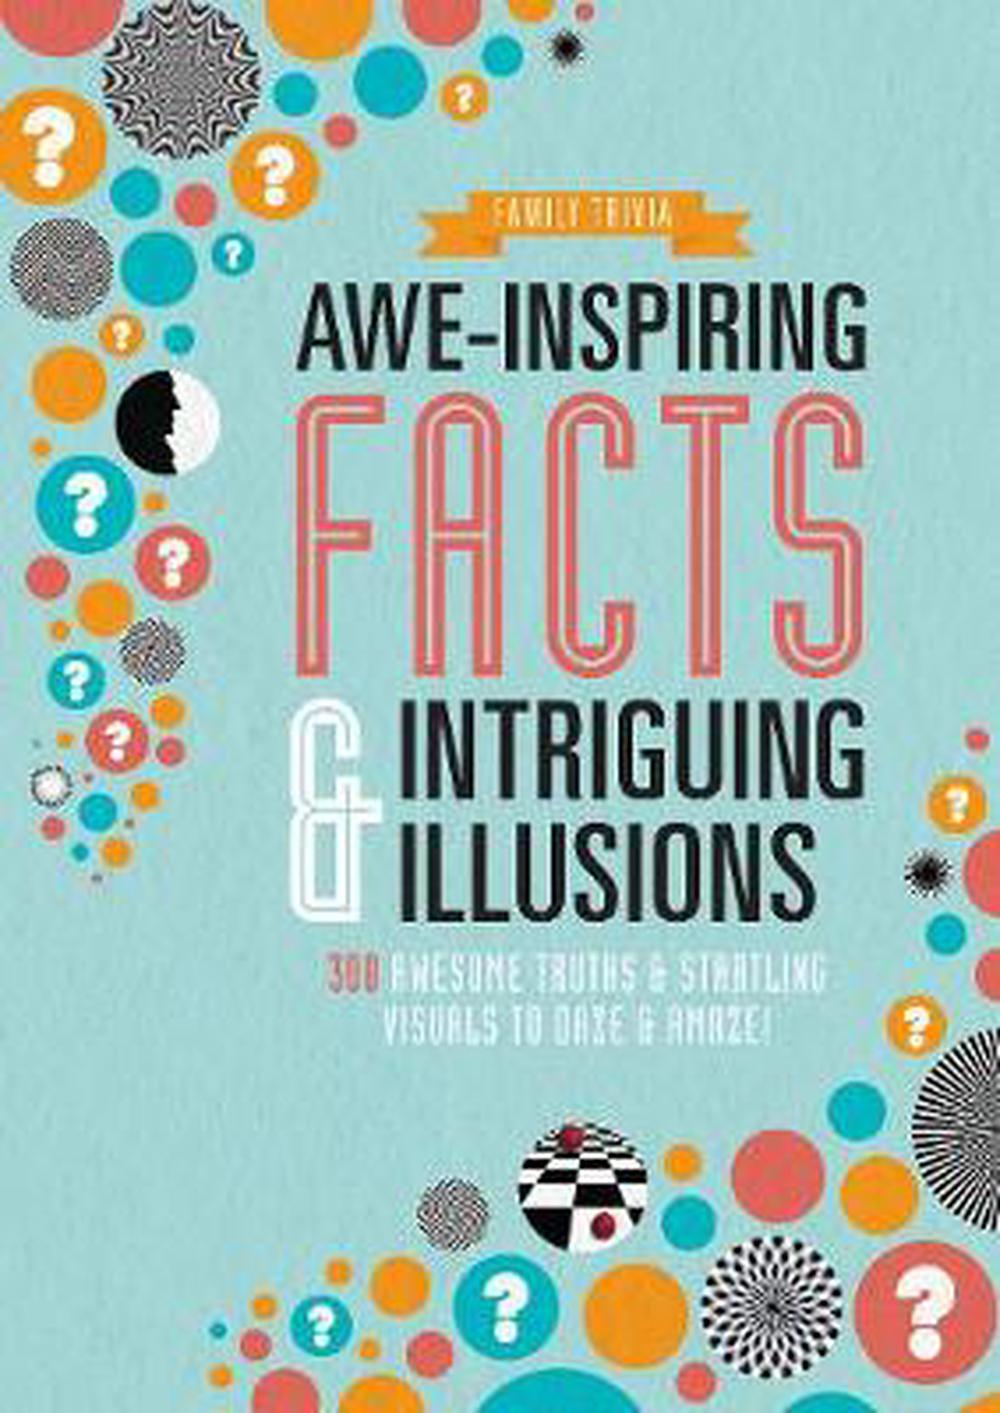 Awe-Inspiring Facts & Intriguing Illusions by Parragon Books